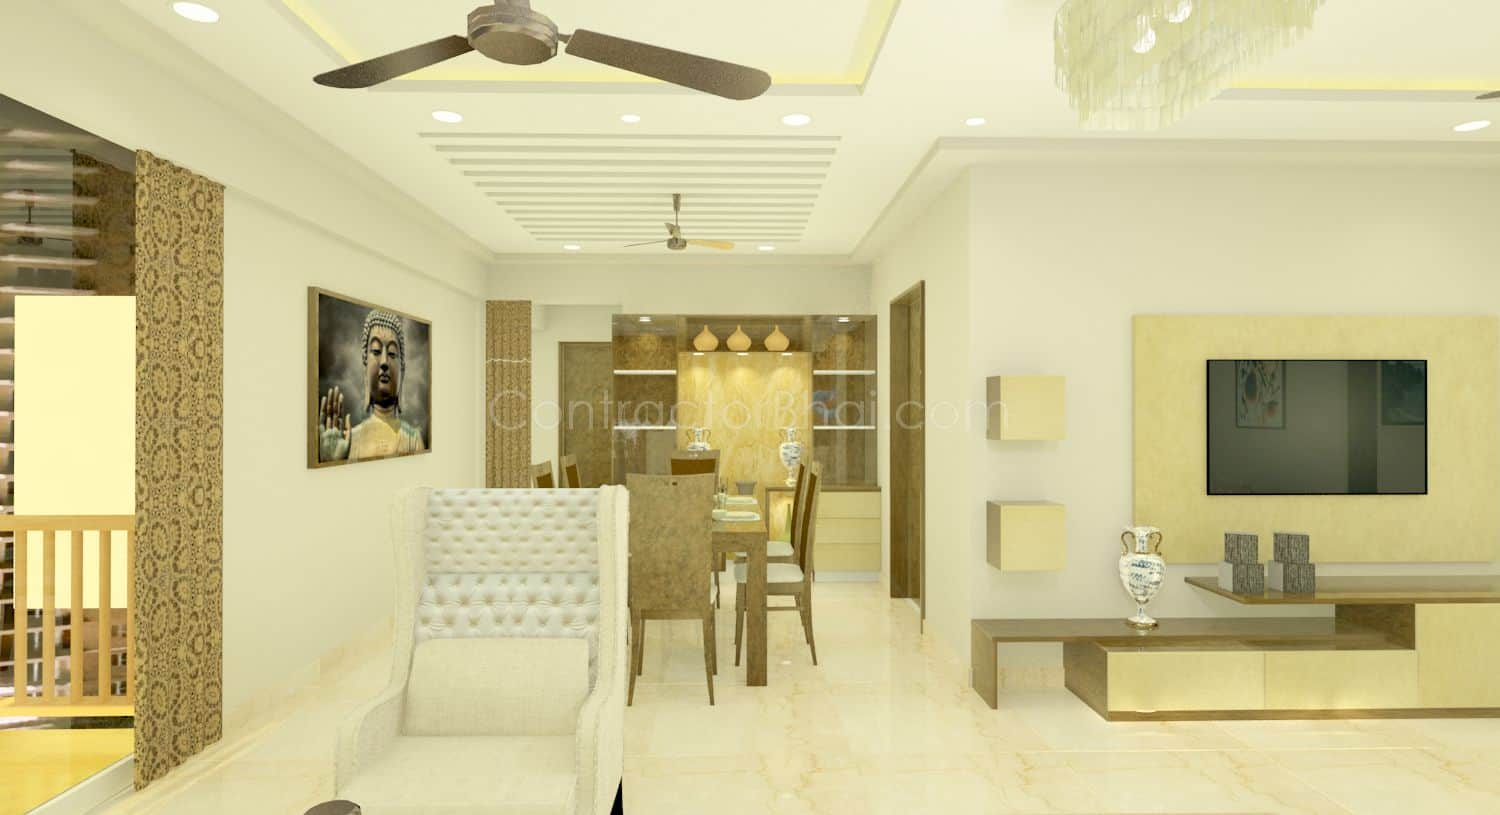 Interior design for 3 bhk home - 3d Design Service 10 2